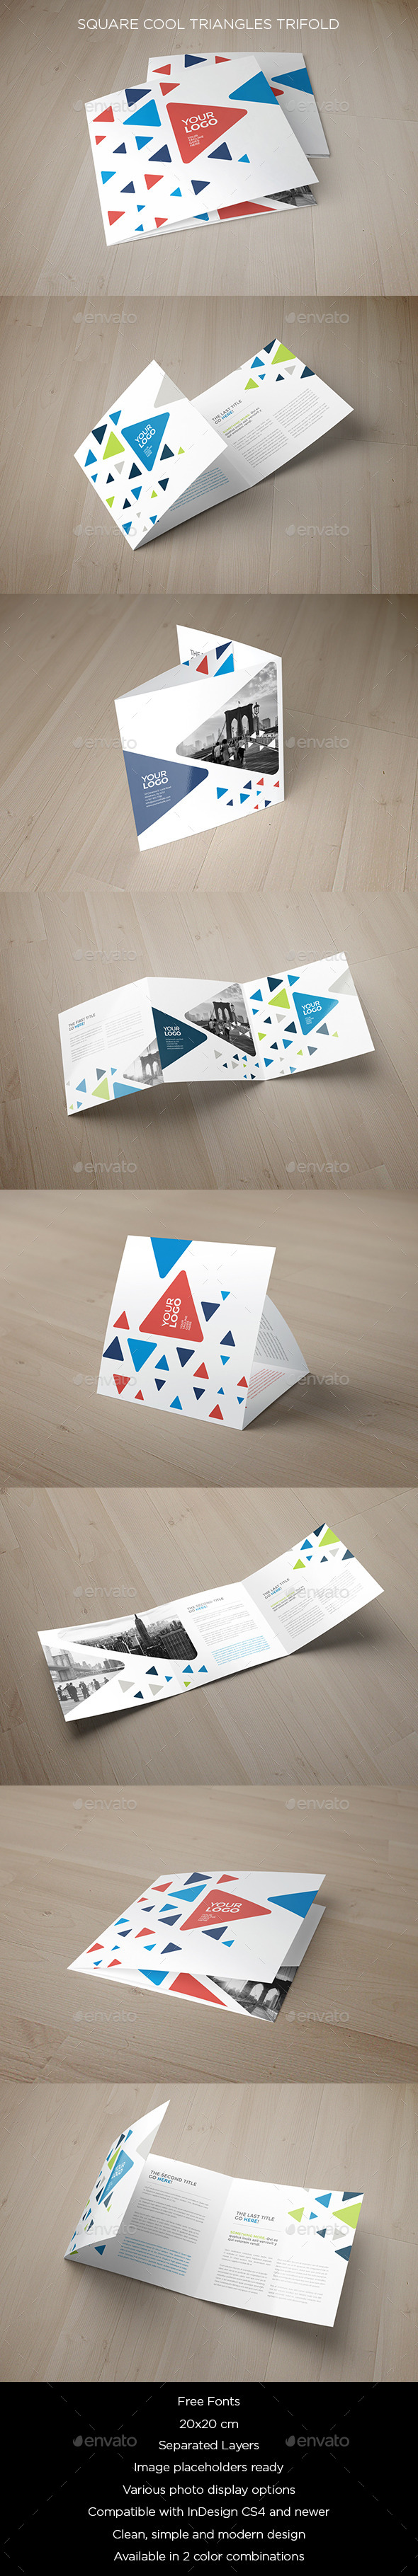 Square Cool Triangles Trifold - Brochures Print Templates